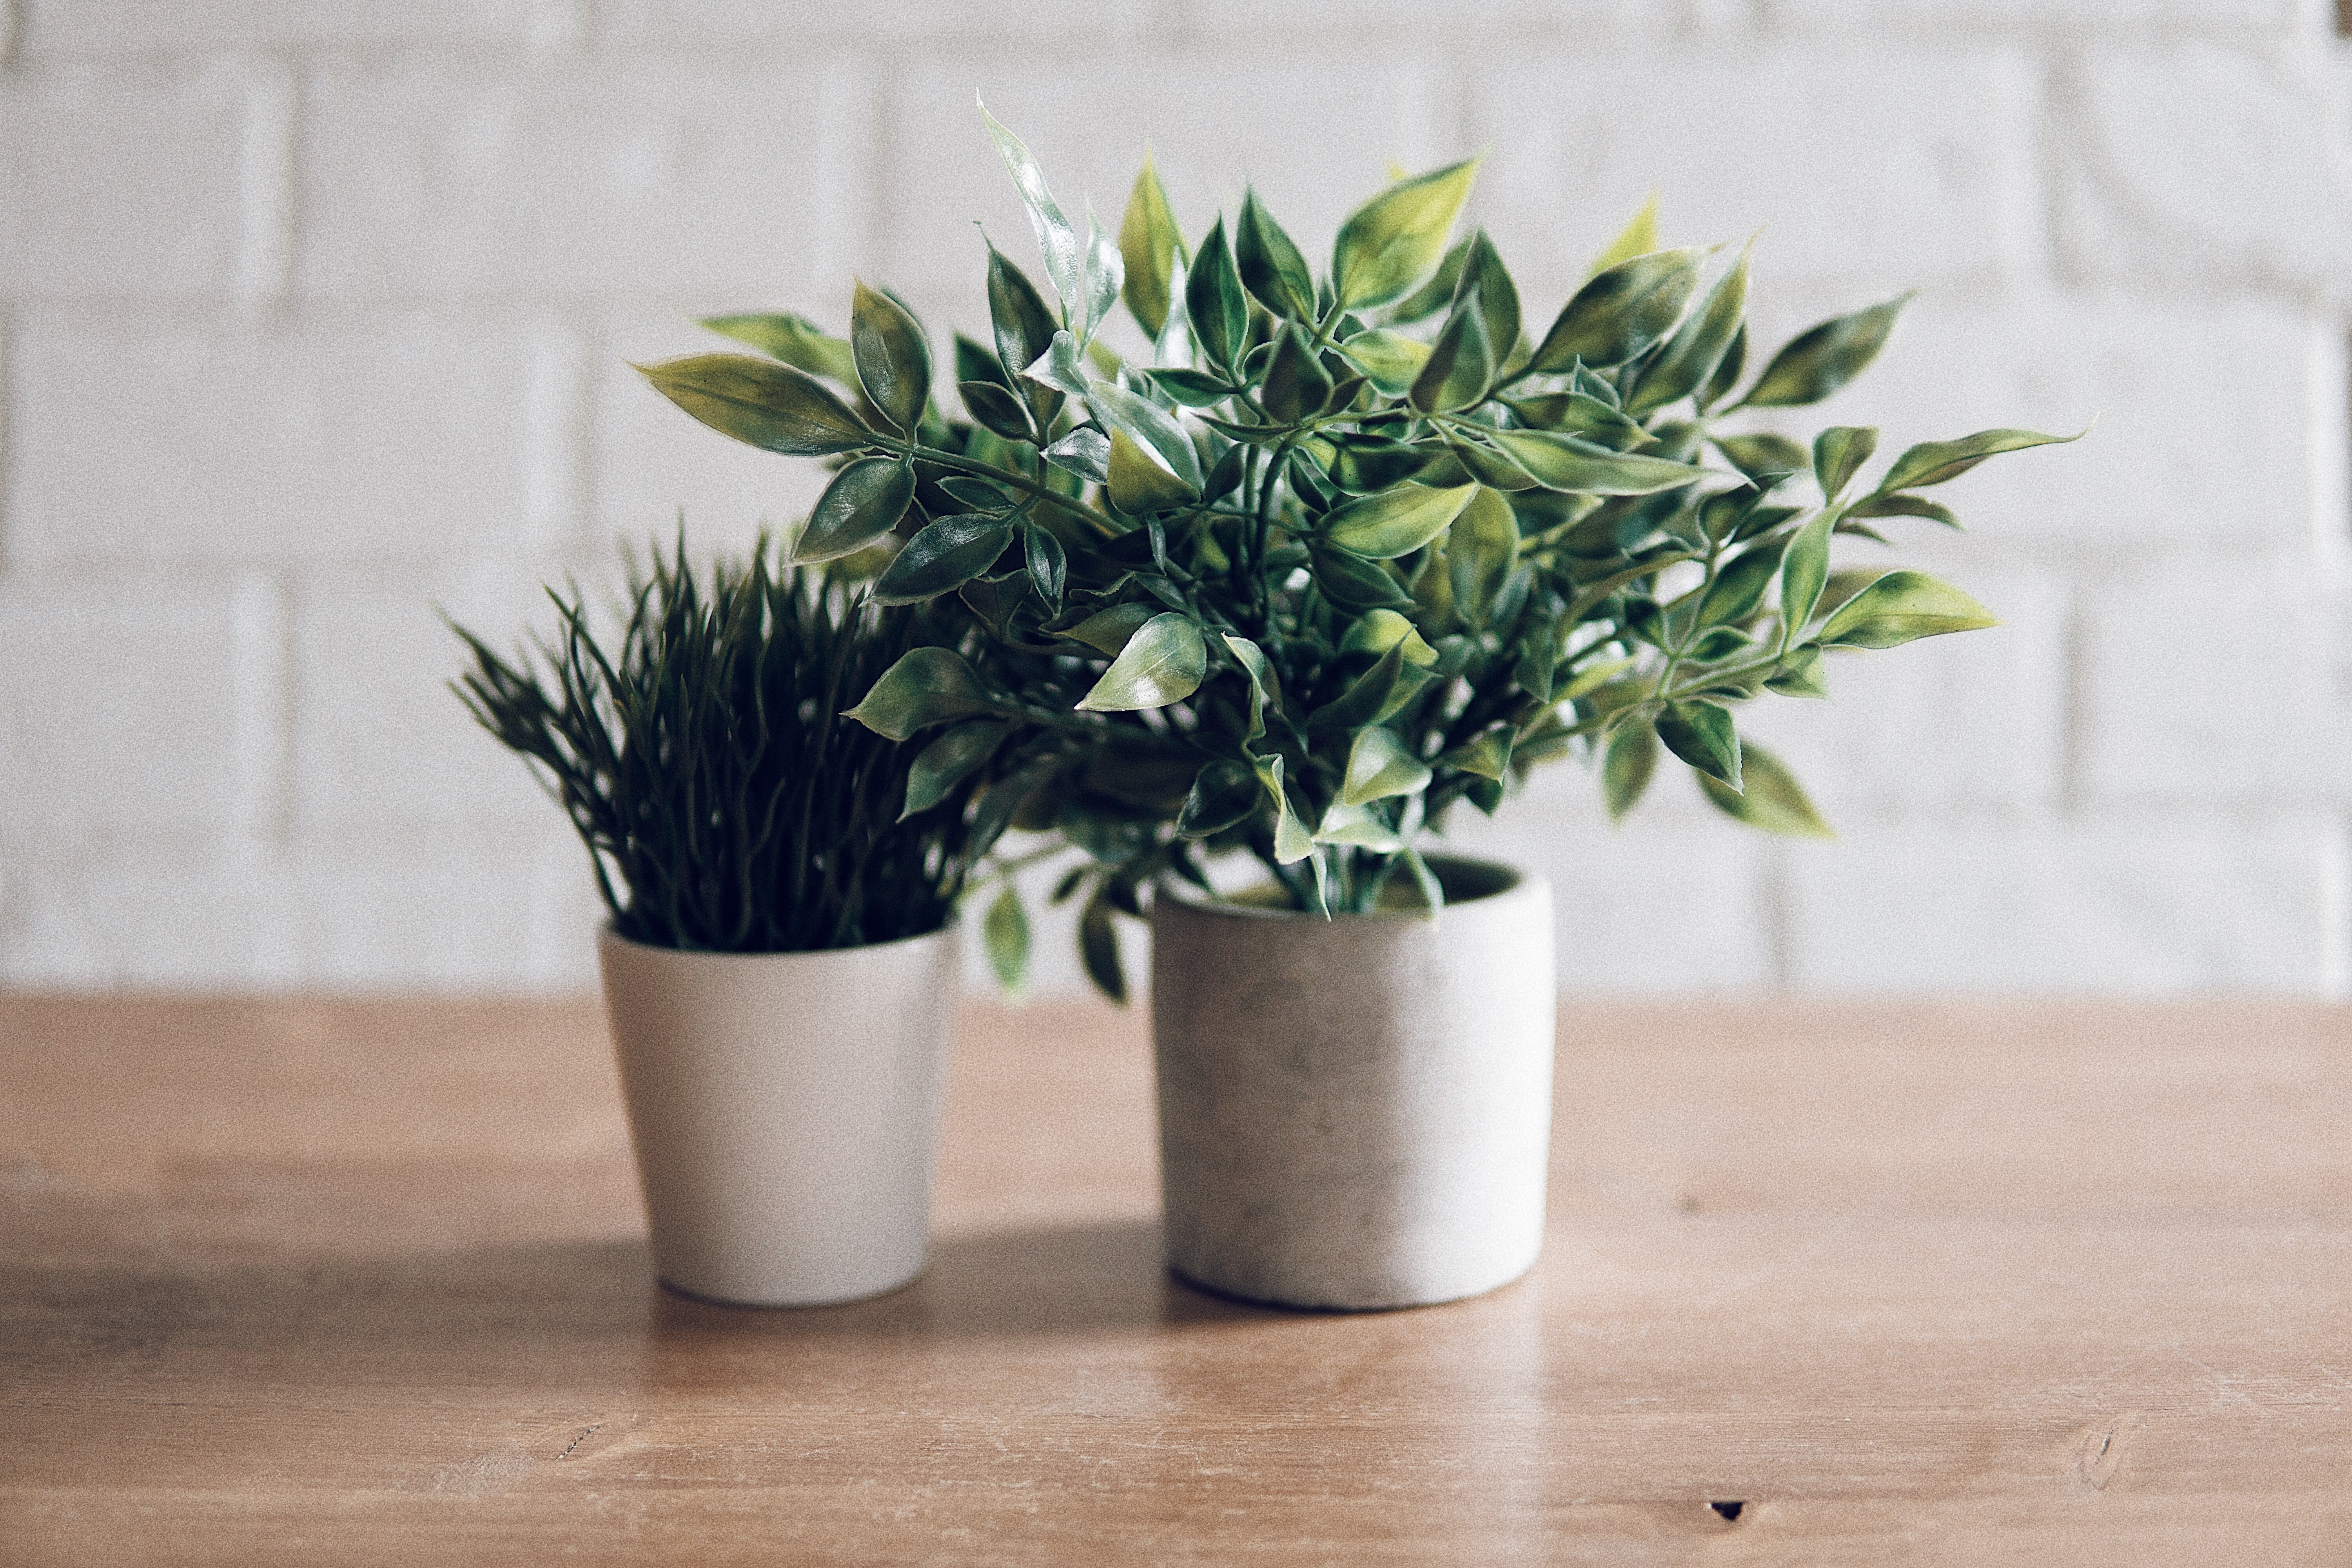 two plants in white pots